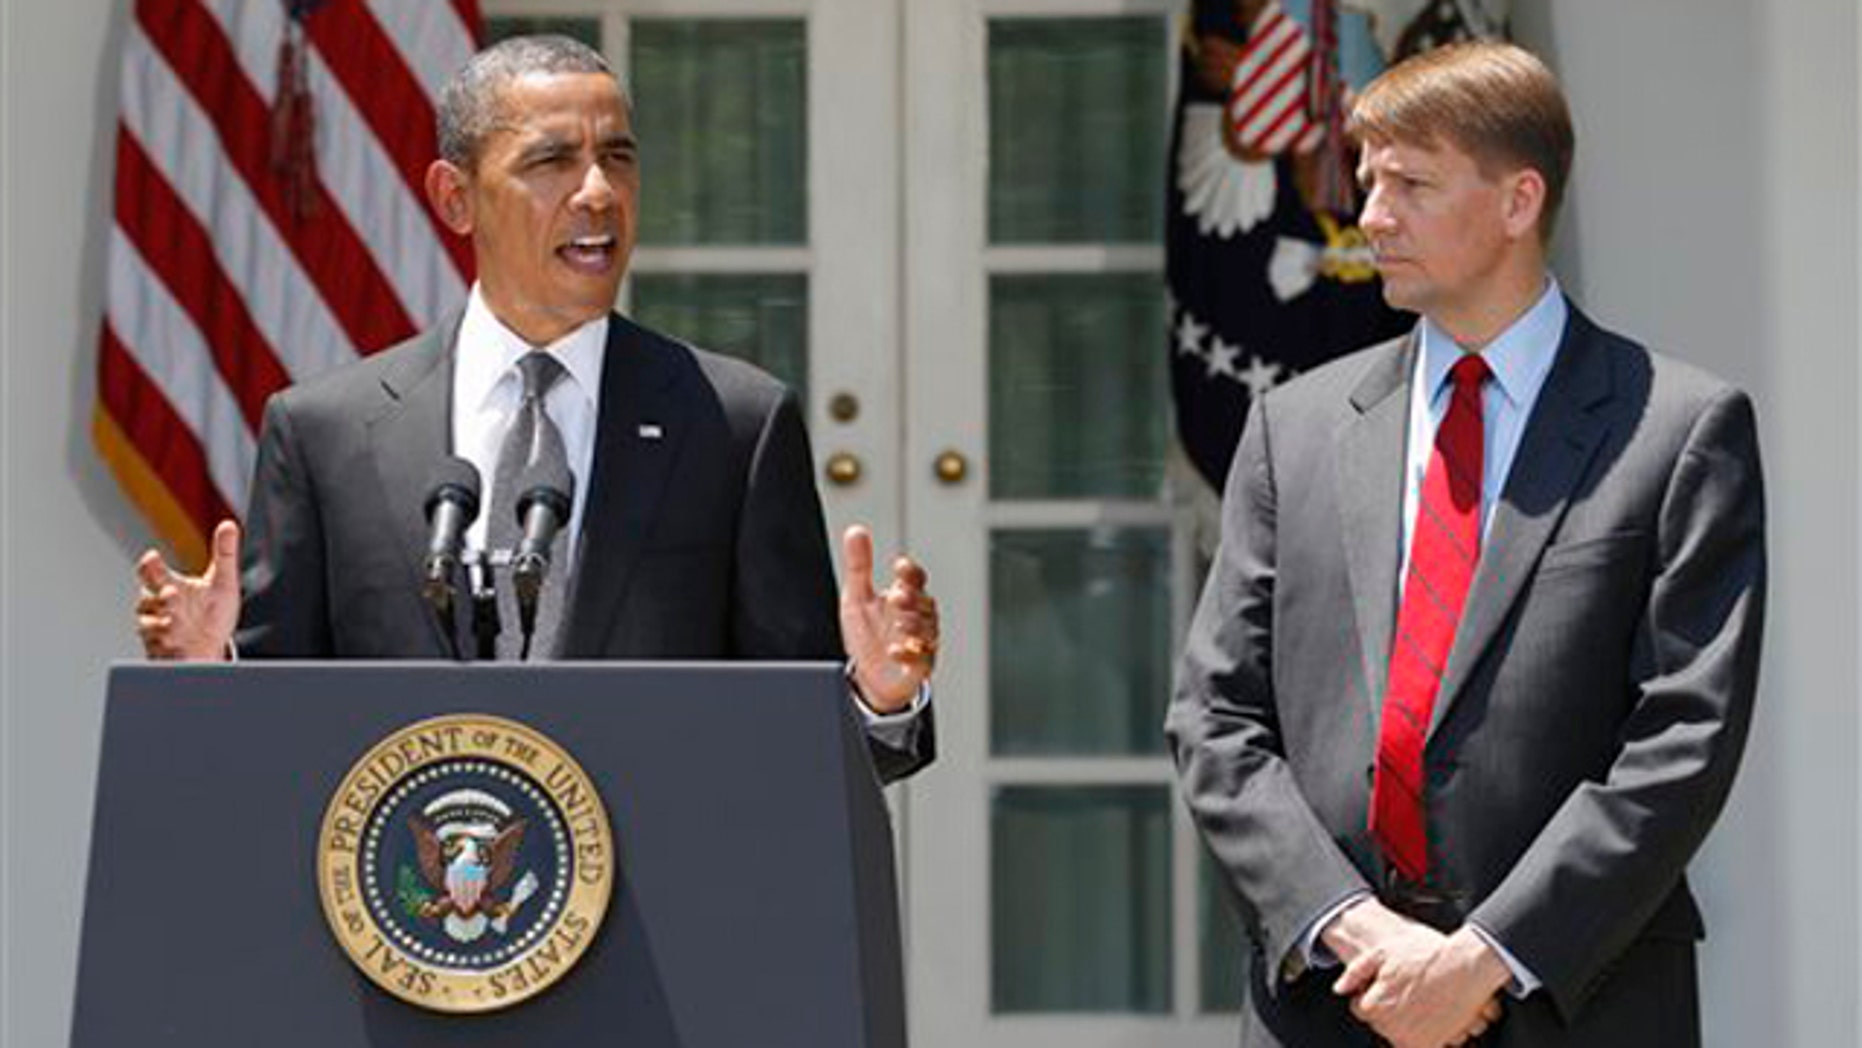 President Obama announces the nomination of former Ohio Attorney General Richard Cordray, right, to serve as the first director of the Consumer Financial Protection Bureau July 18 in Washington.